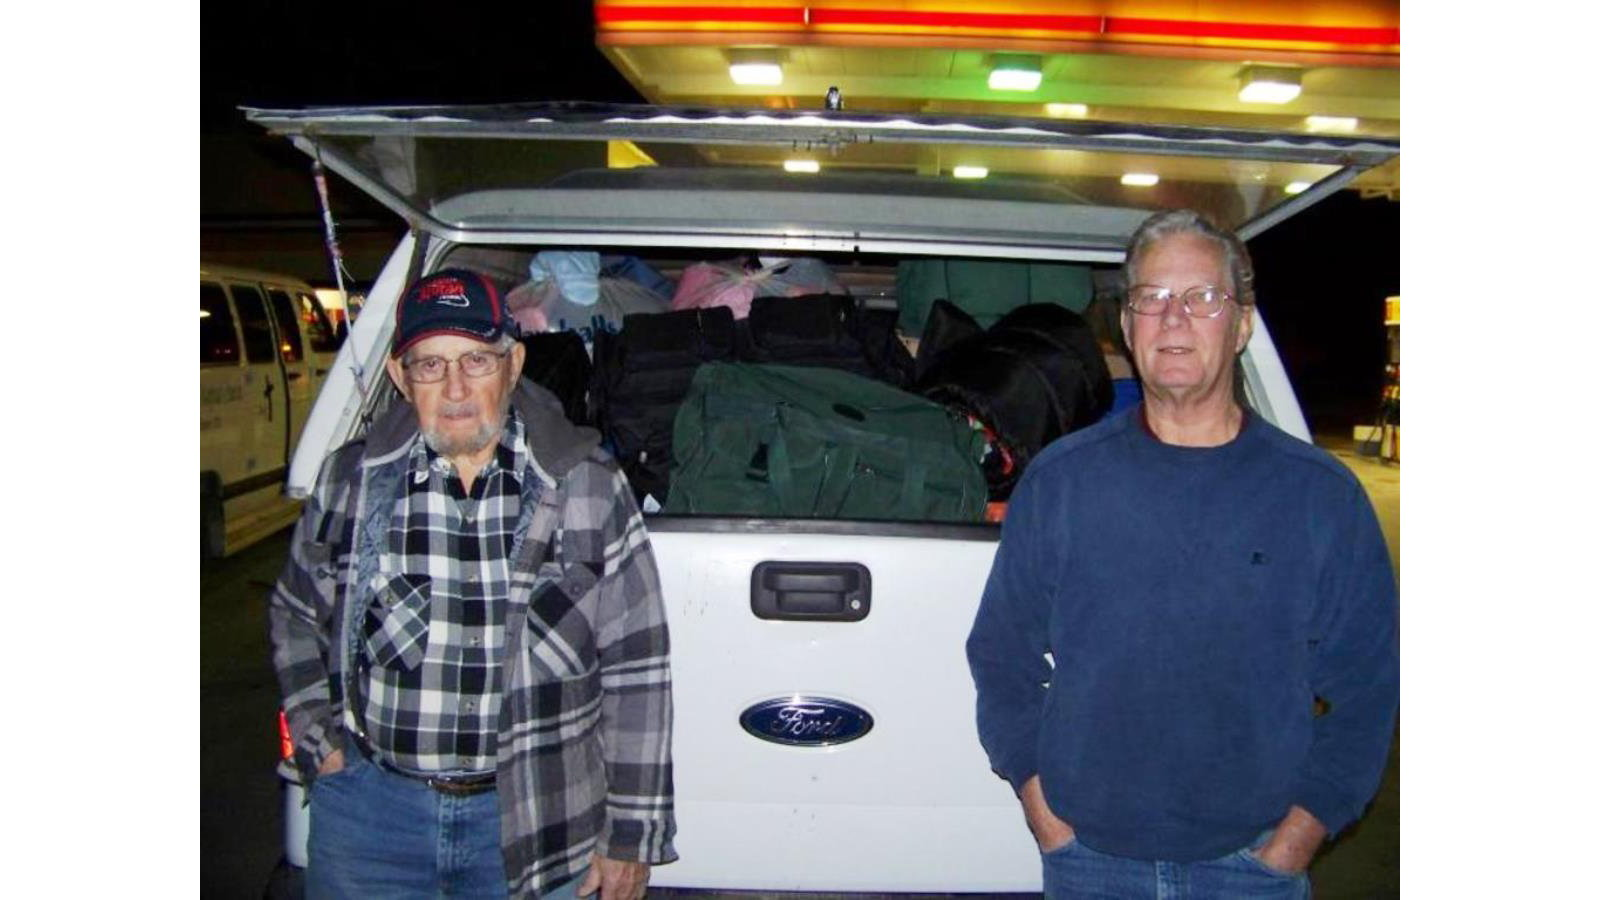 Fellowship Baptist Church Donates Gifts and Time